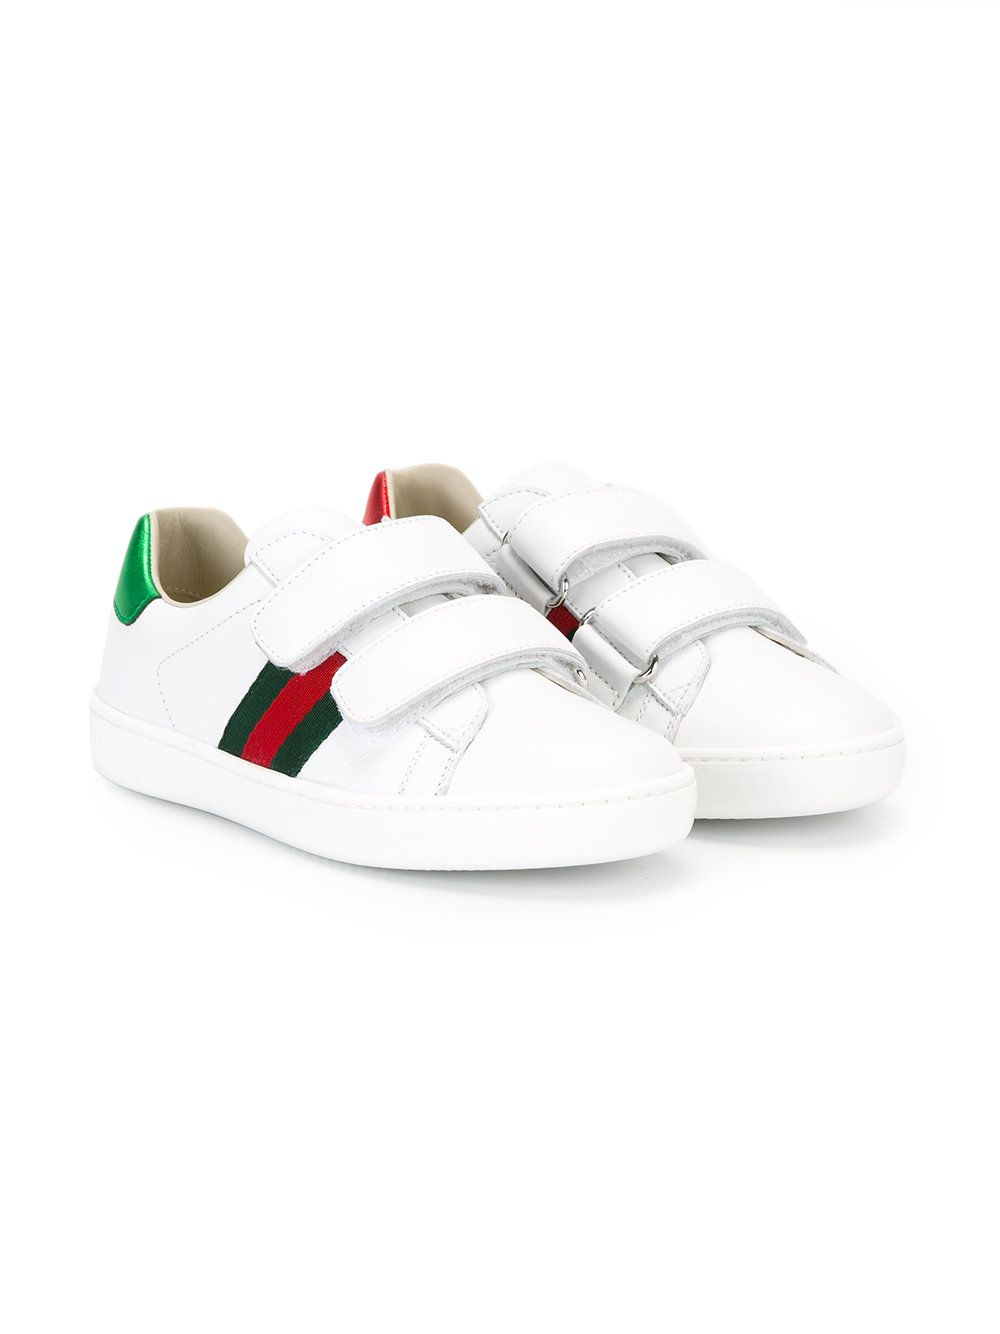 607d70293b  gucci  kids  web  sneakers  shoes  white  sporty  style www.jofre.eu